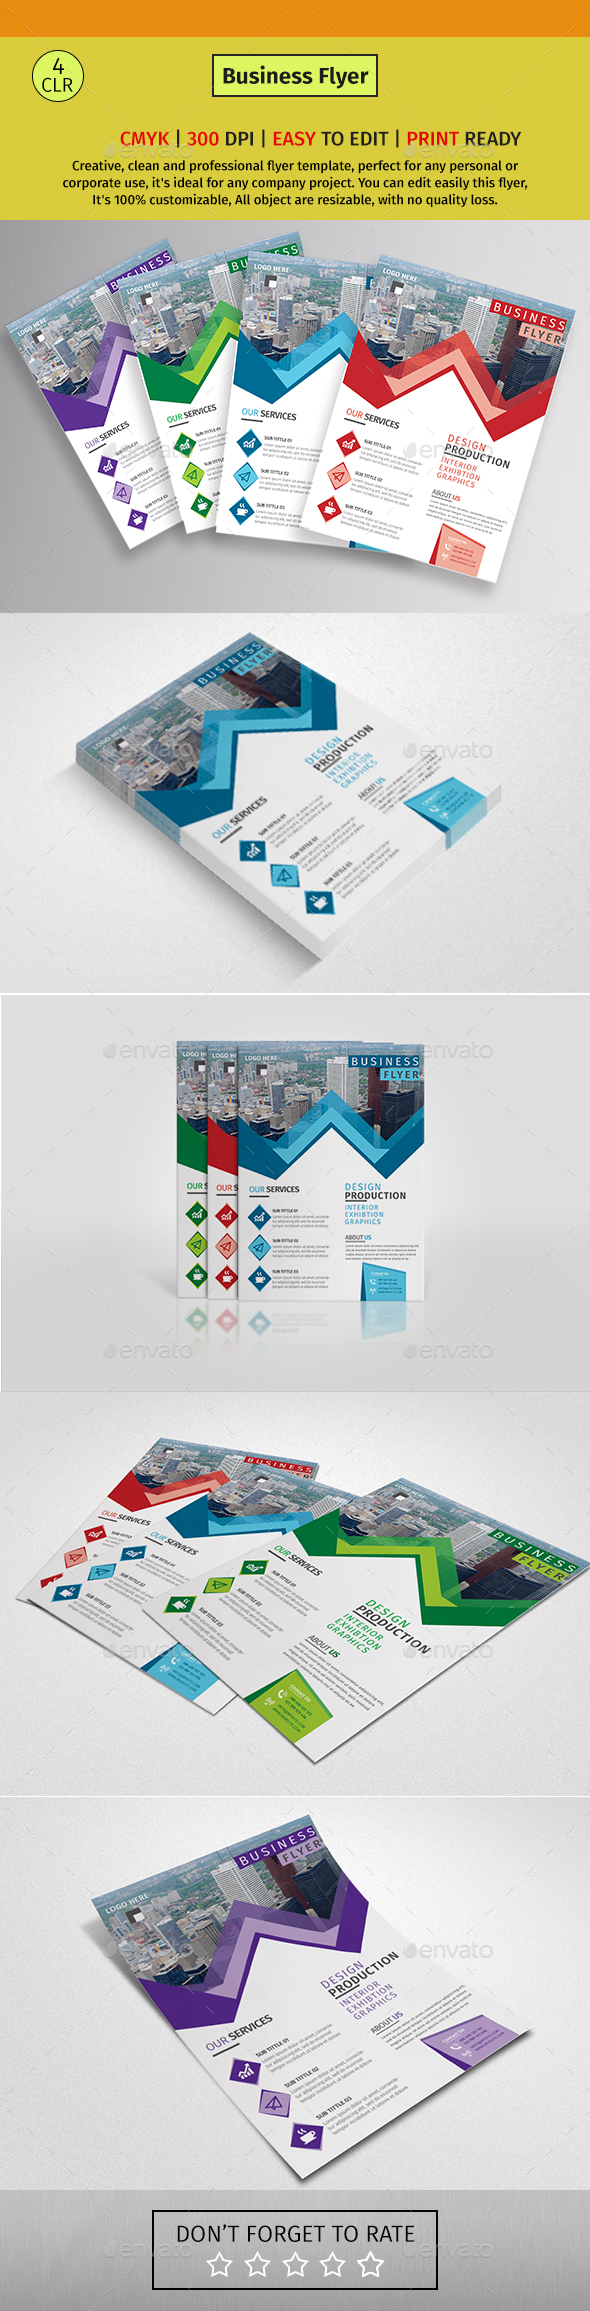 A4b Corporate Business Flyer #140 - Corporate Flyers